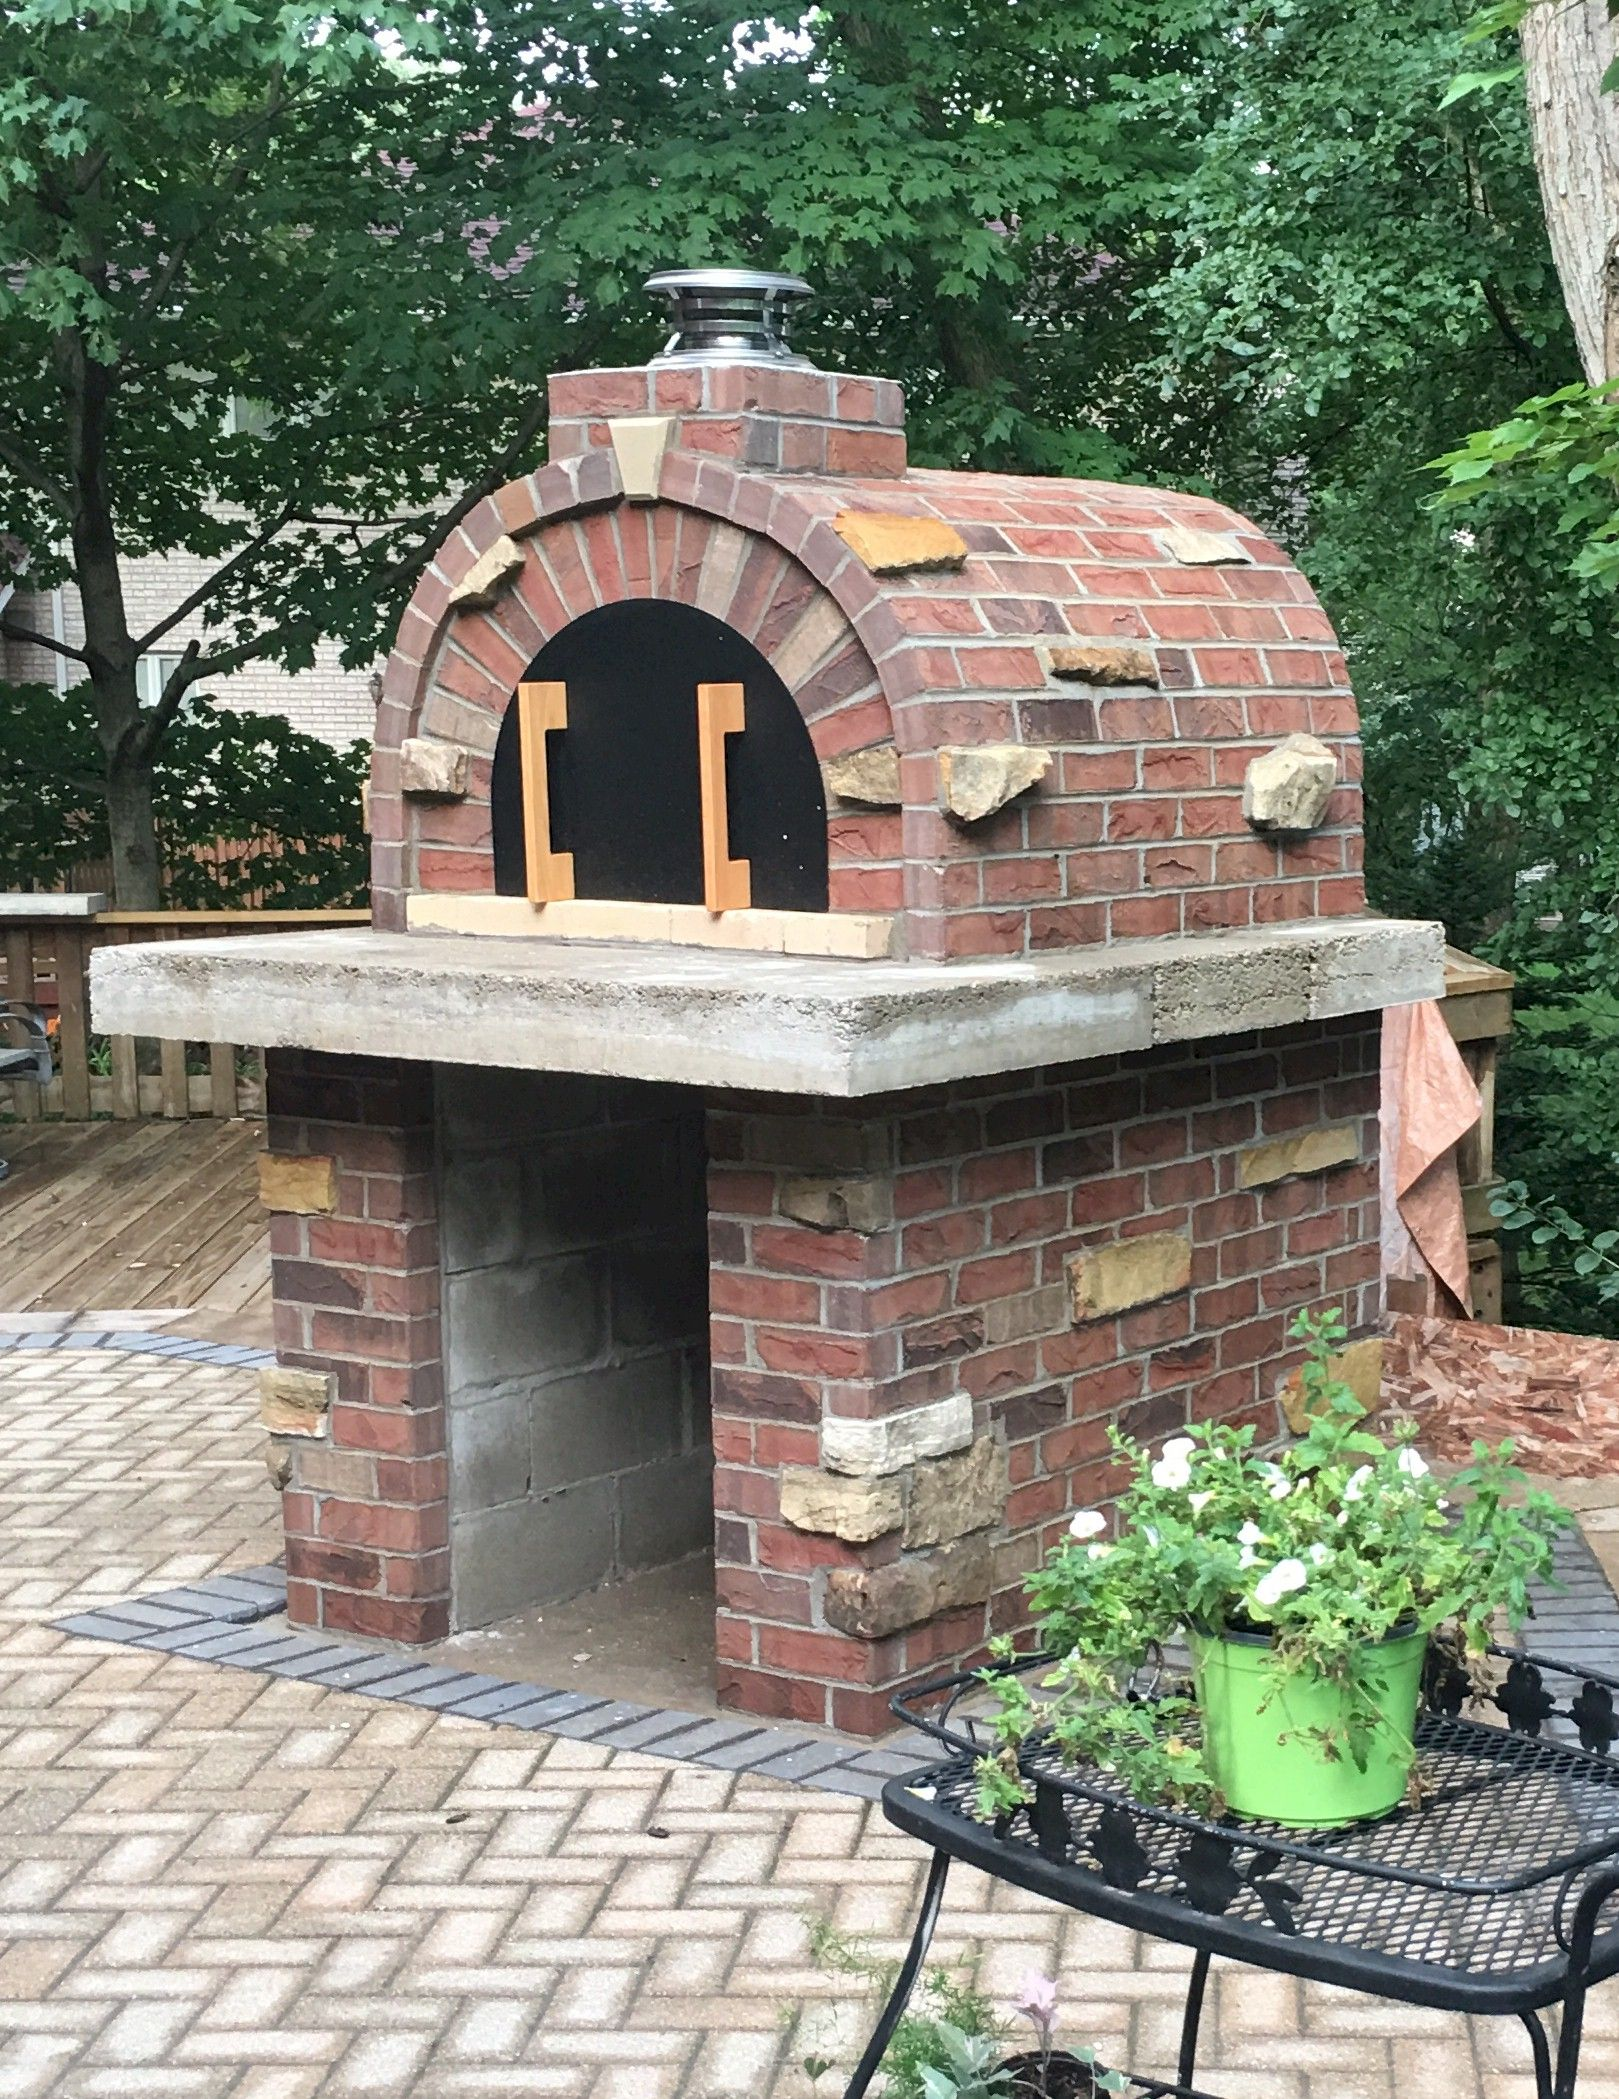 HOW TO BUILD A BRICK PIZZA OVEN | Pizza oven, Backyard ...